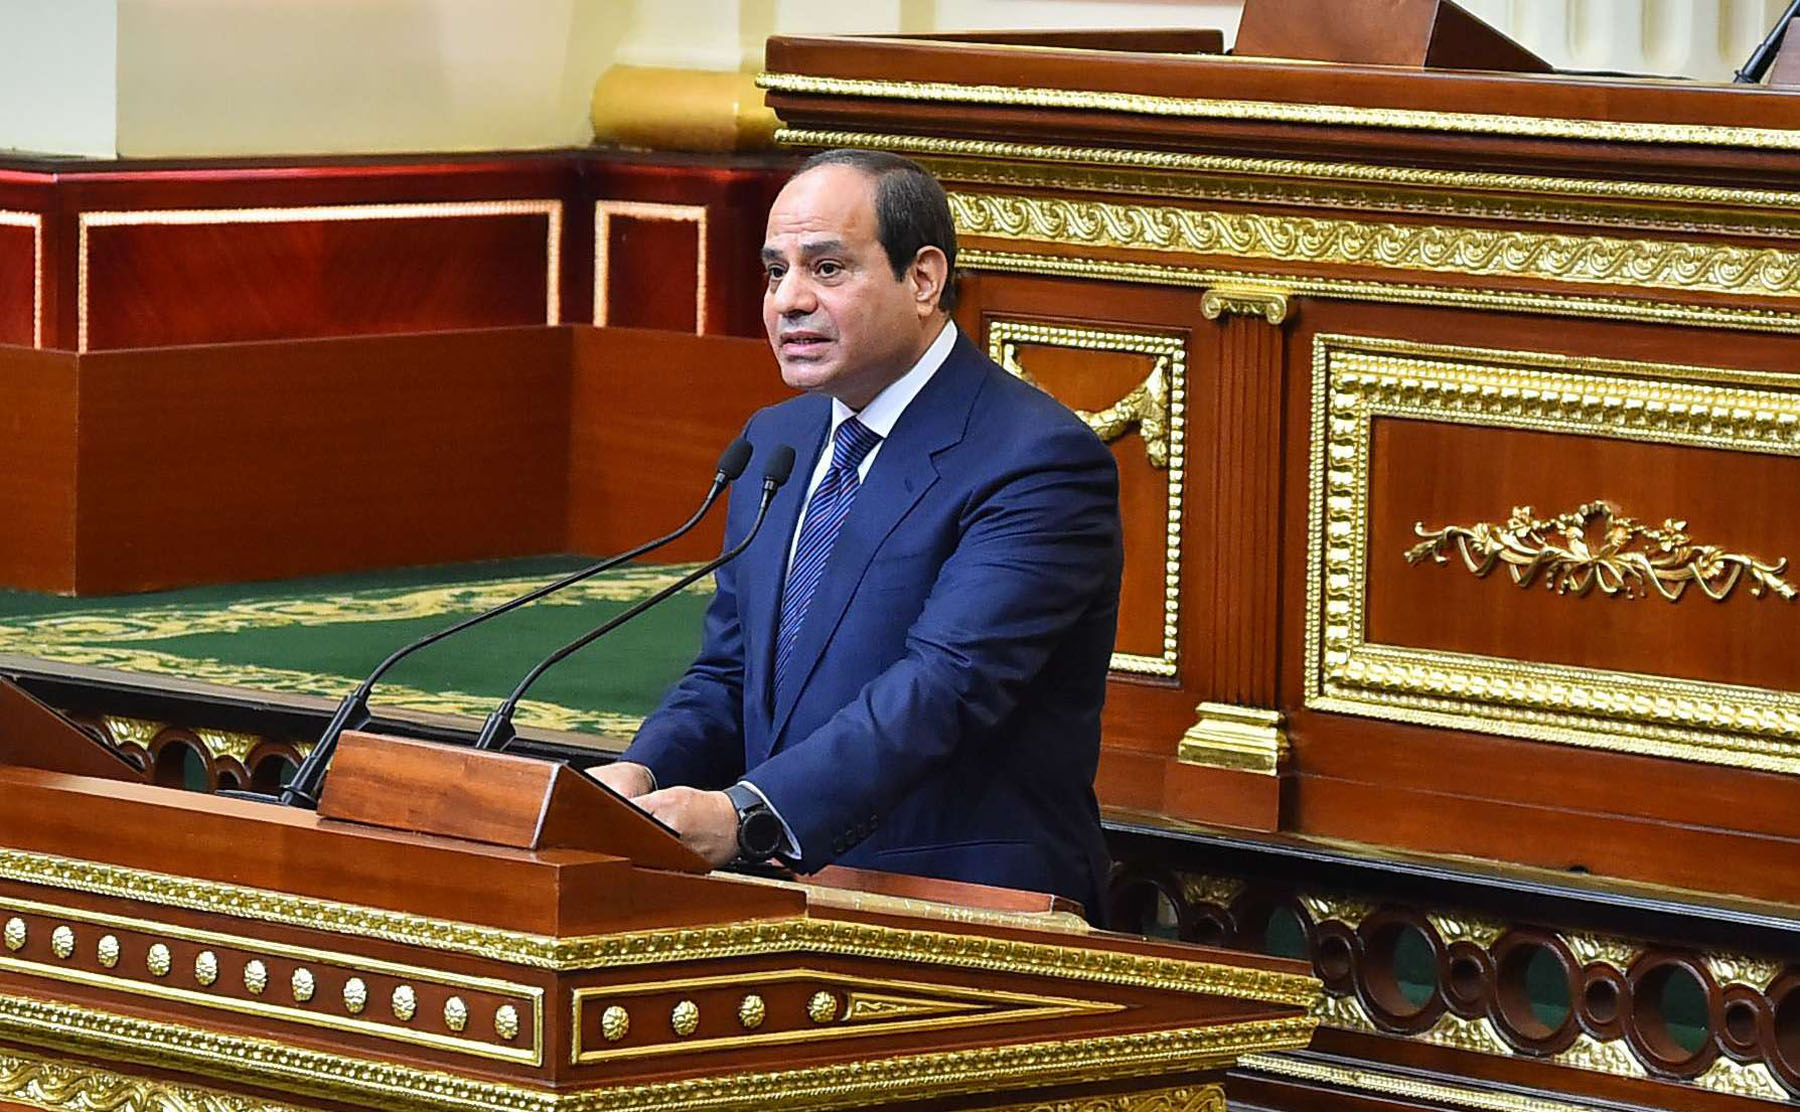 Egyptian President Abdel Fattah al-Sisi speaks at the parliament meeting hall in Cairo, last June.  (AFP)